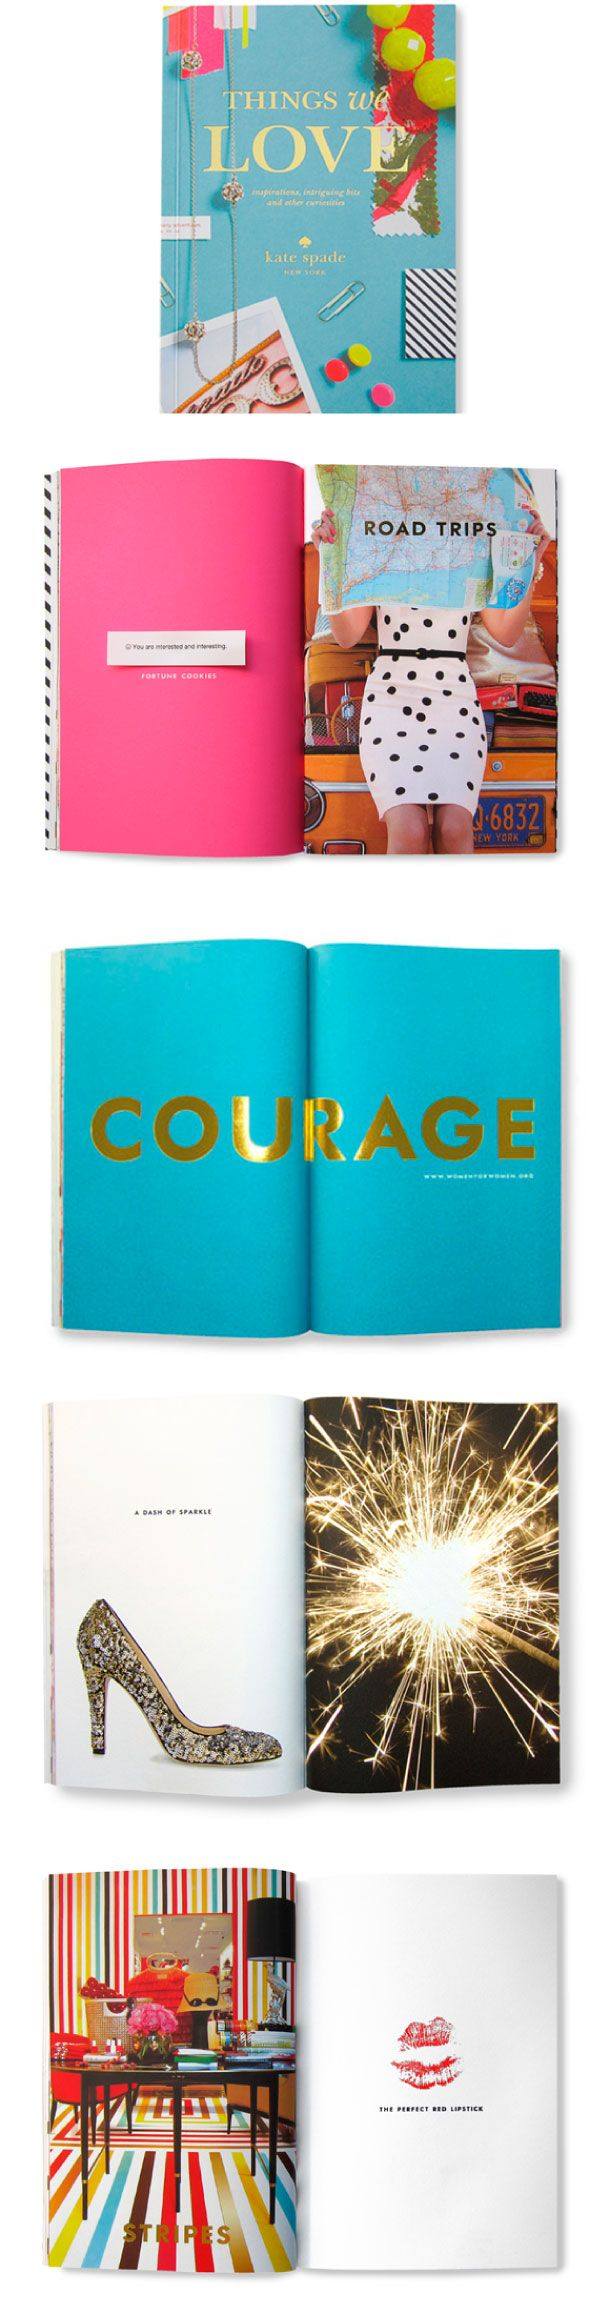 {things we love : kate spade}; Can't find where to buy it from :( but what I can see already is inspiring!